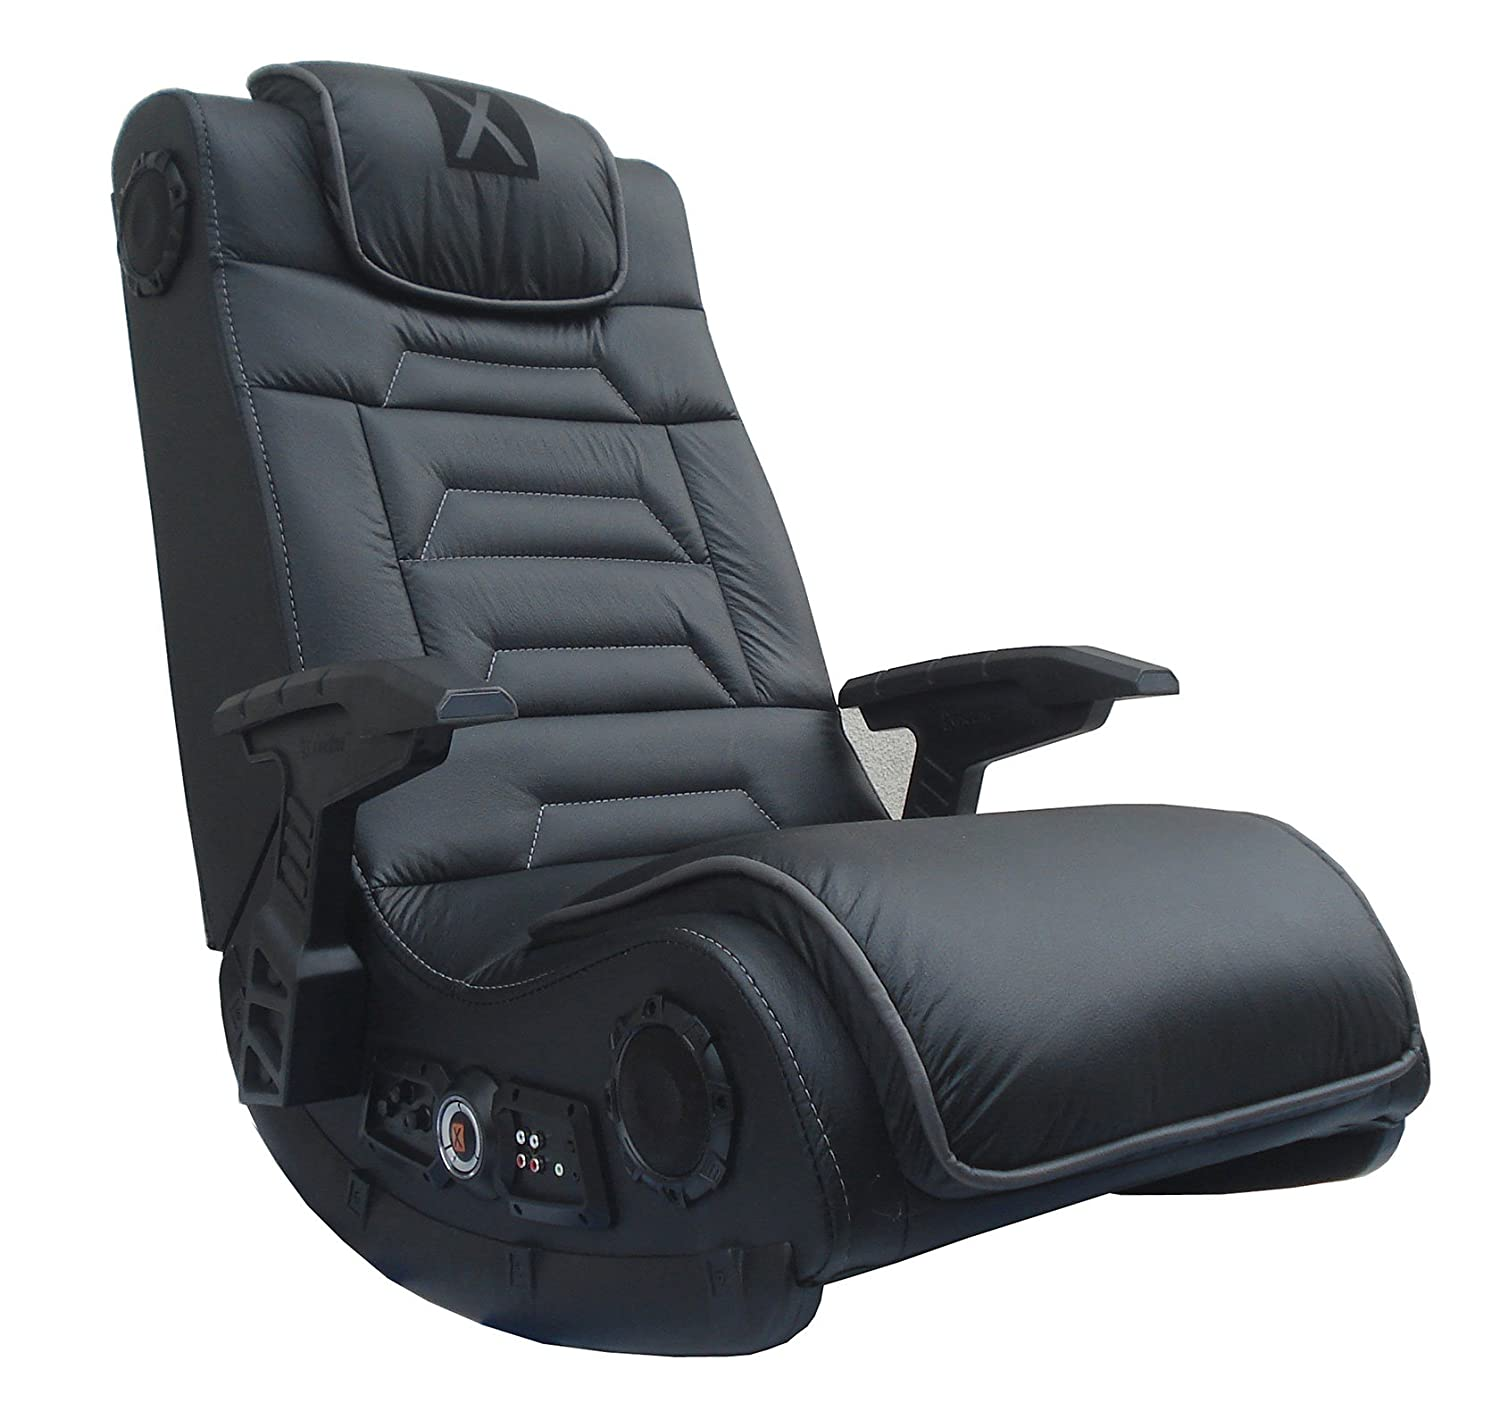 Rocking Gaming Chairs For Heavy People